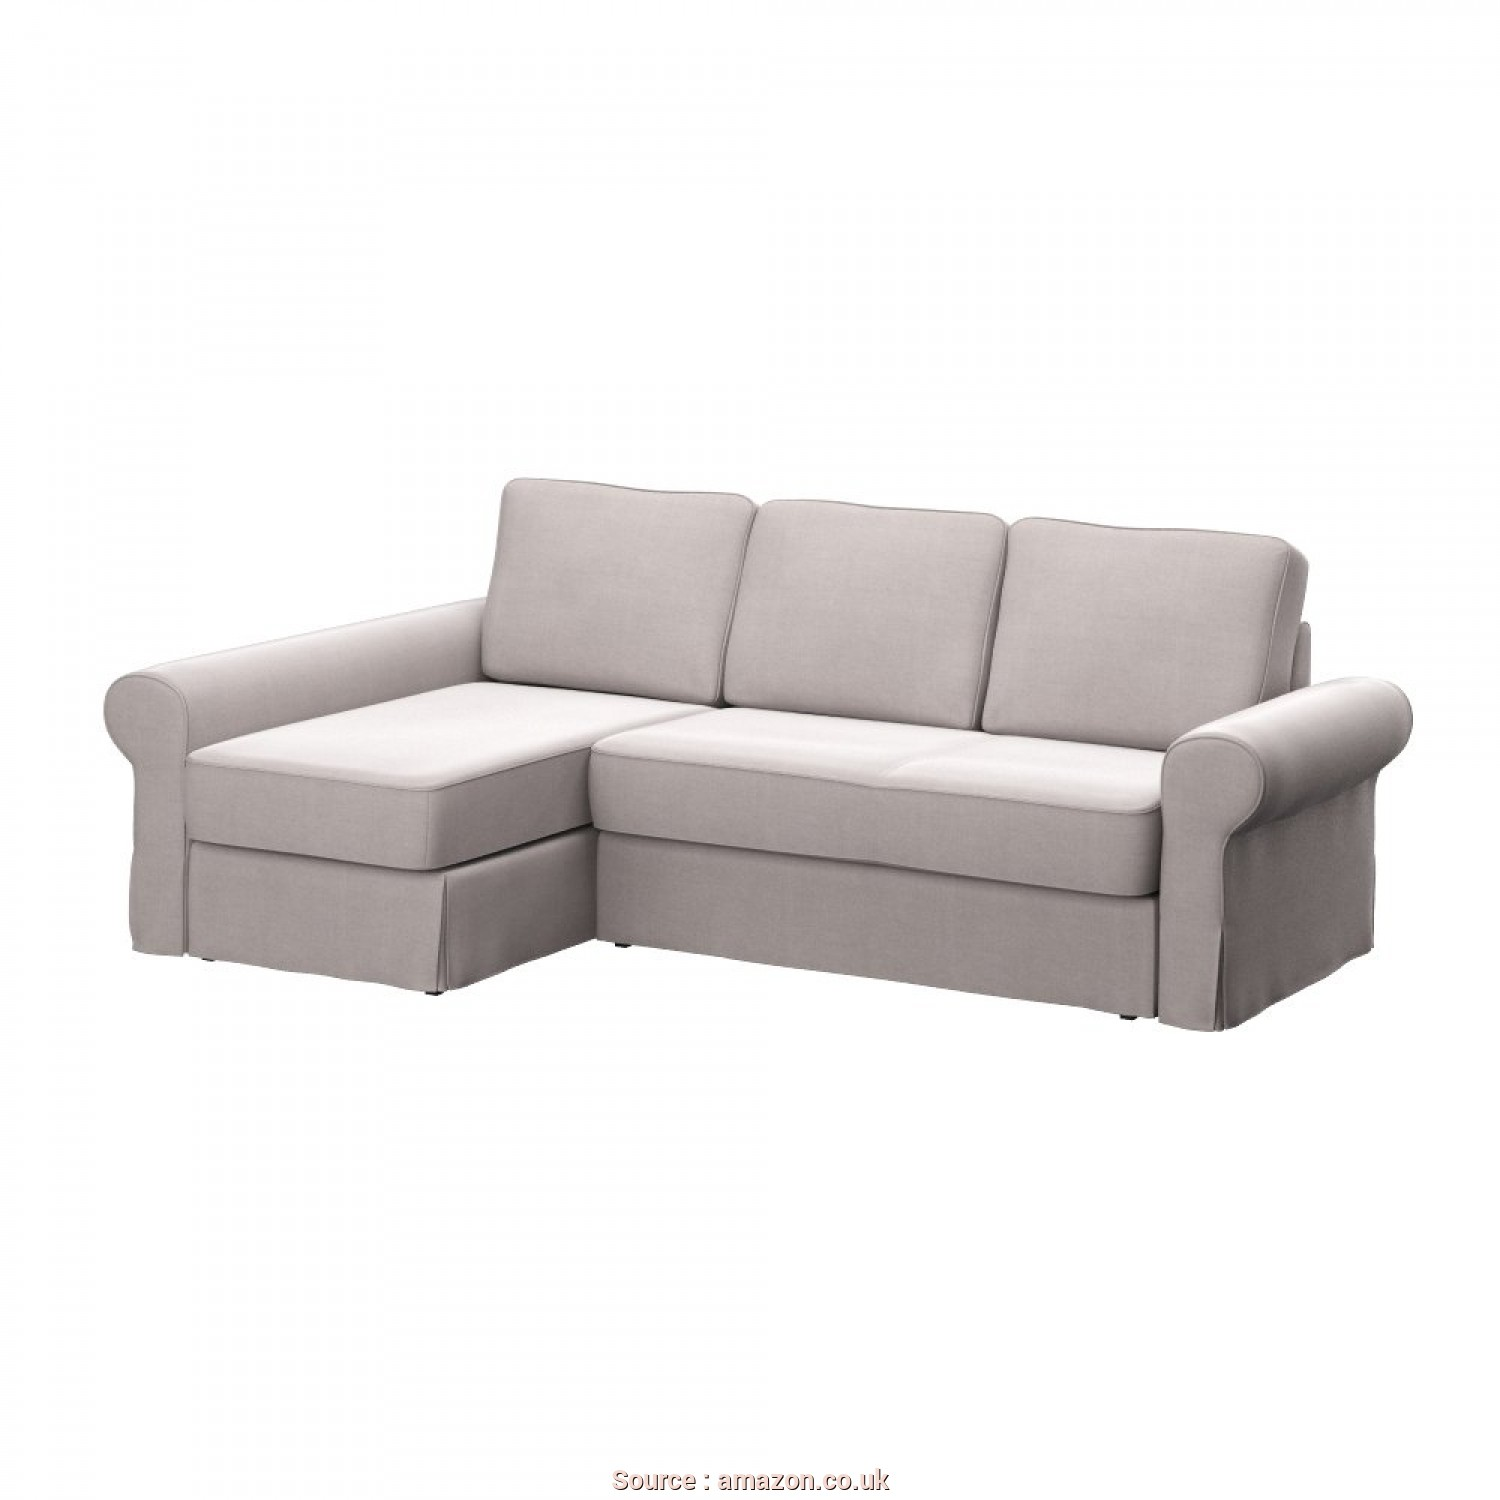 Backabro Ikea France, Deale Soferia, Replacement Cover, IKEA BACKABRO Sofa With Chaise Longue, Elegance Beige: Amazon.Co.Uk: Kitchen & Home